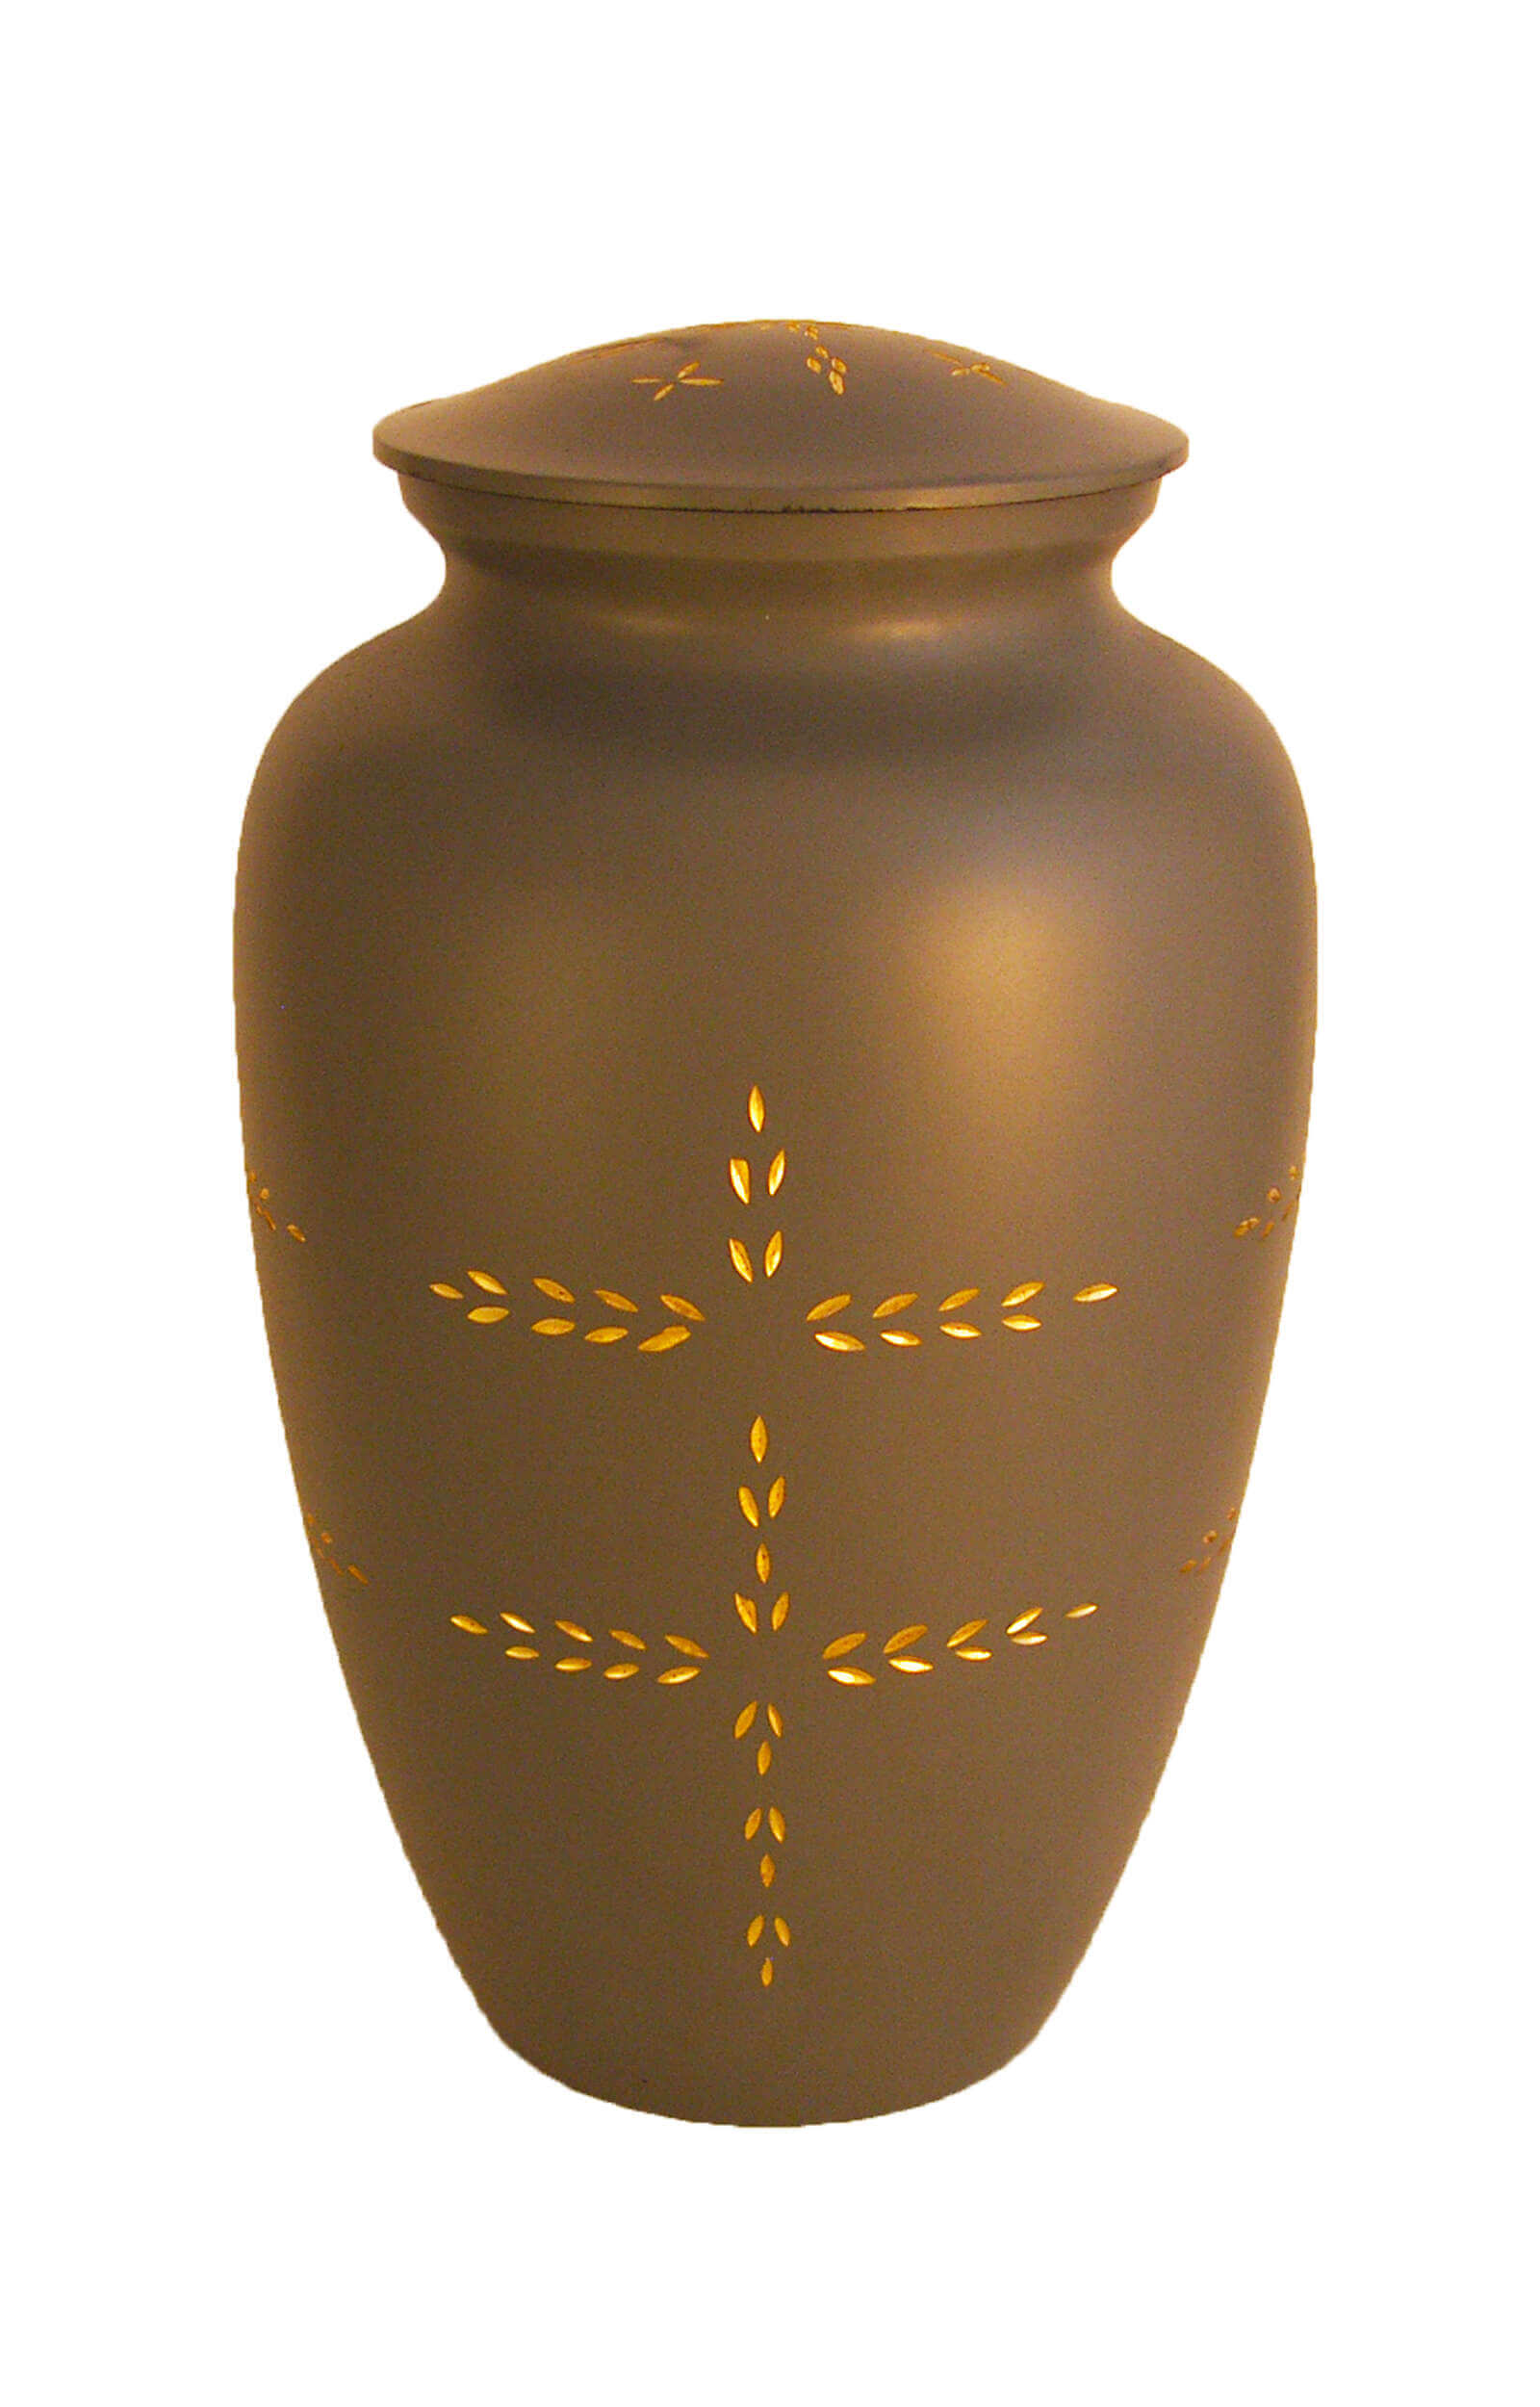 en MGK1003 brass urn cross grey gold funeral urns for human ashes on sale